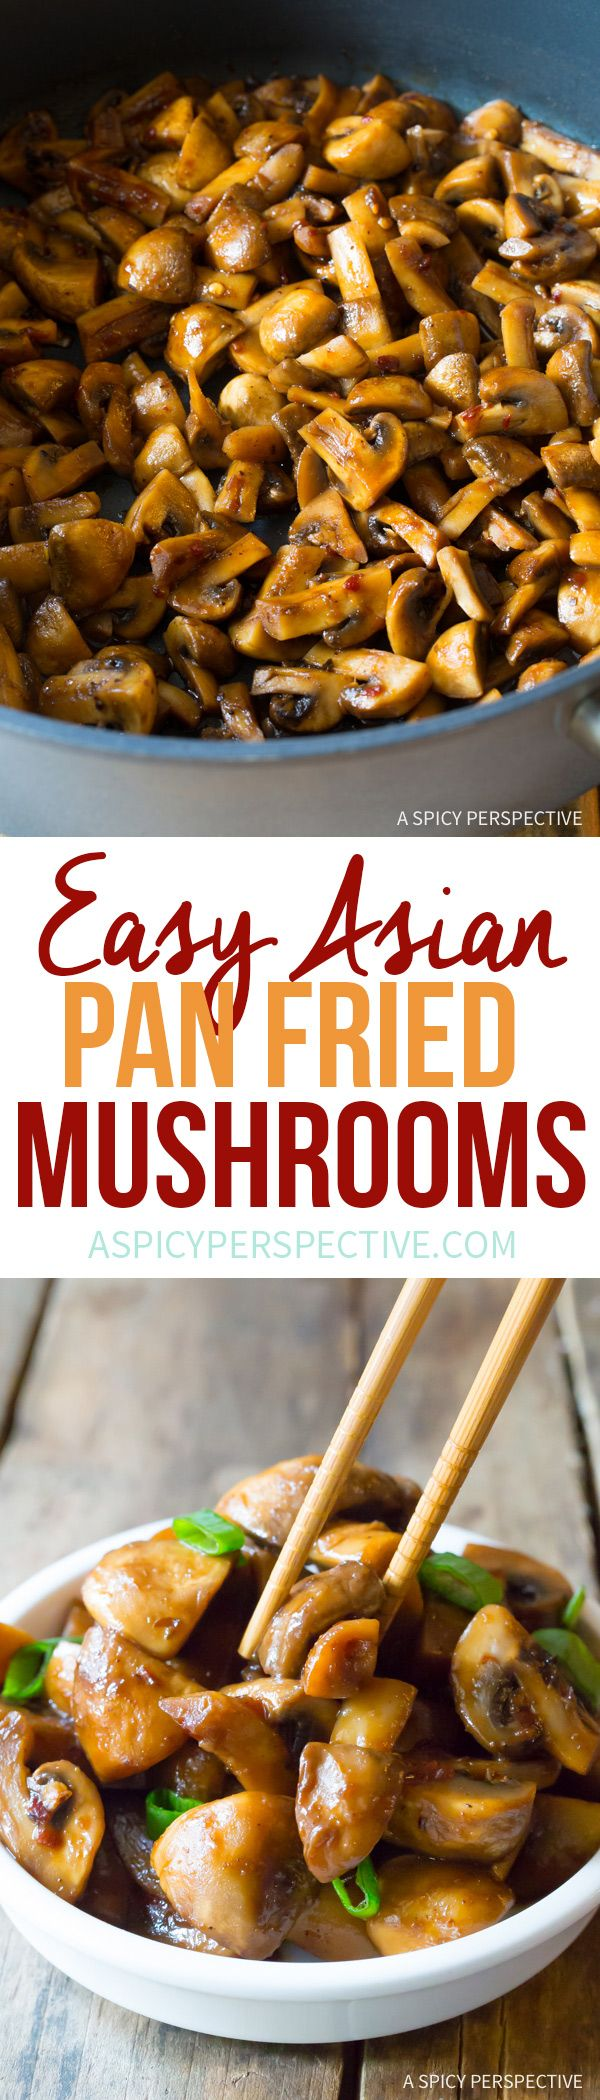 Perfect Asian Stir Fried Mushrooms #healthy #lowcarb via @spicyperspectiv